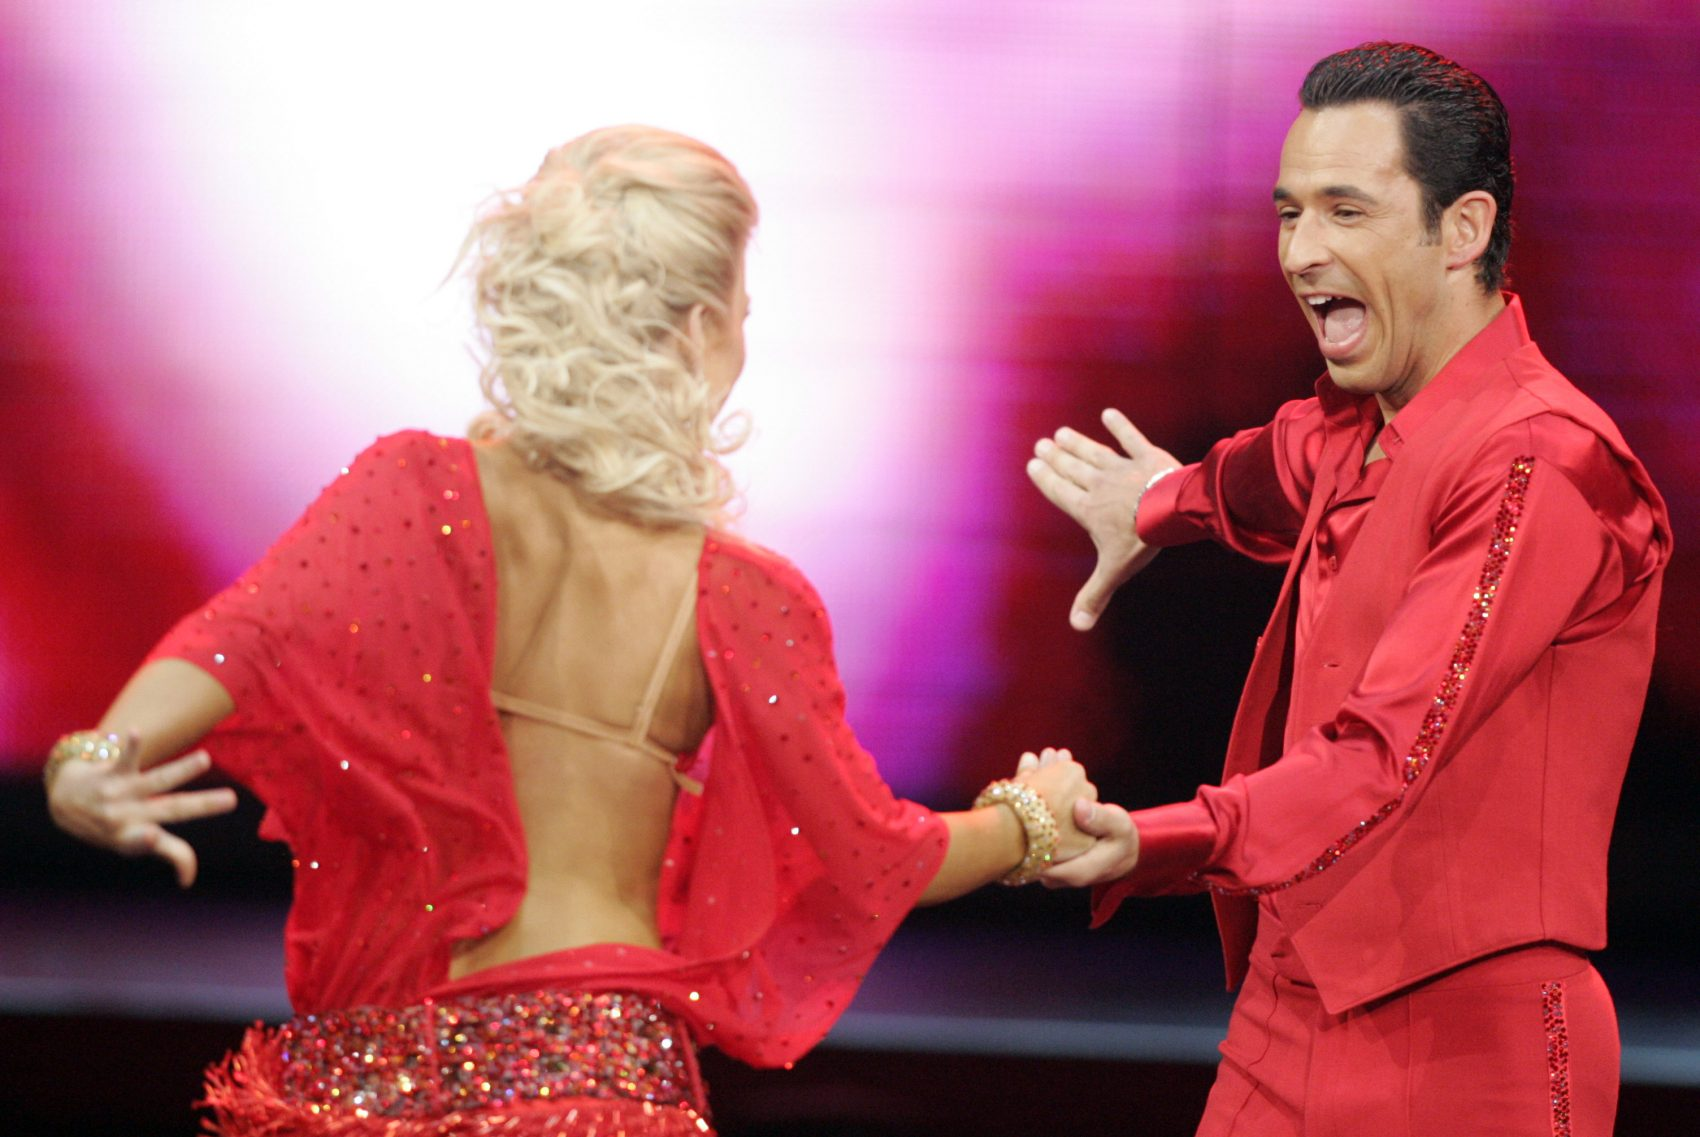 Auto racer Helio Castroneves, right, performs with Julianne Hough on the TV show Dancing With The Stars. (AJ Mast/AP)